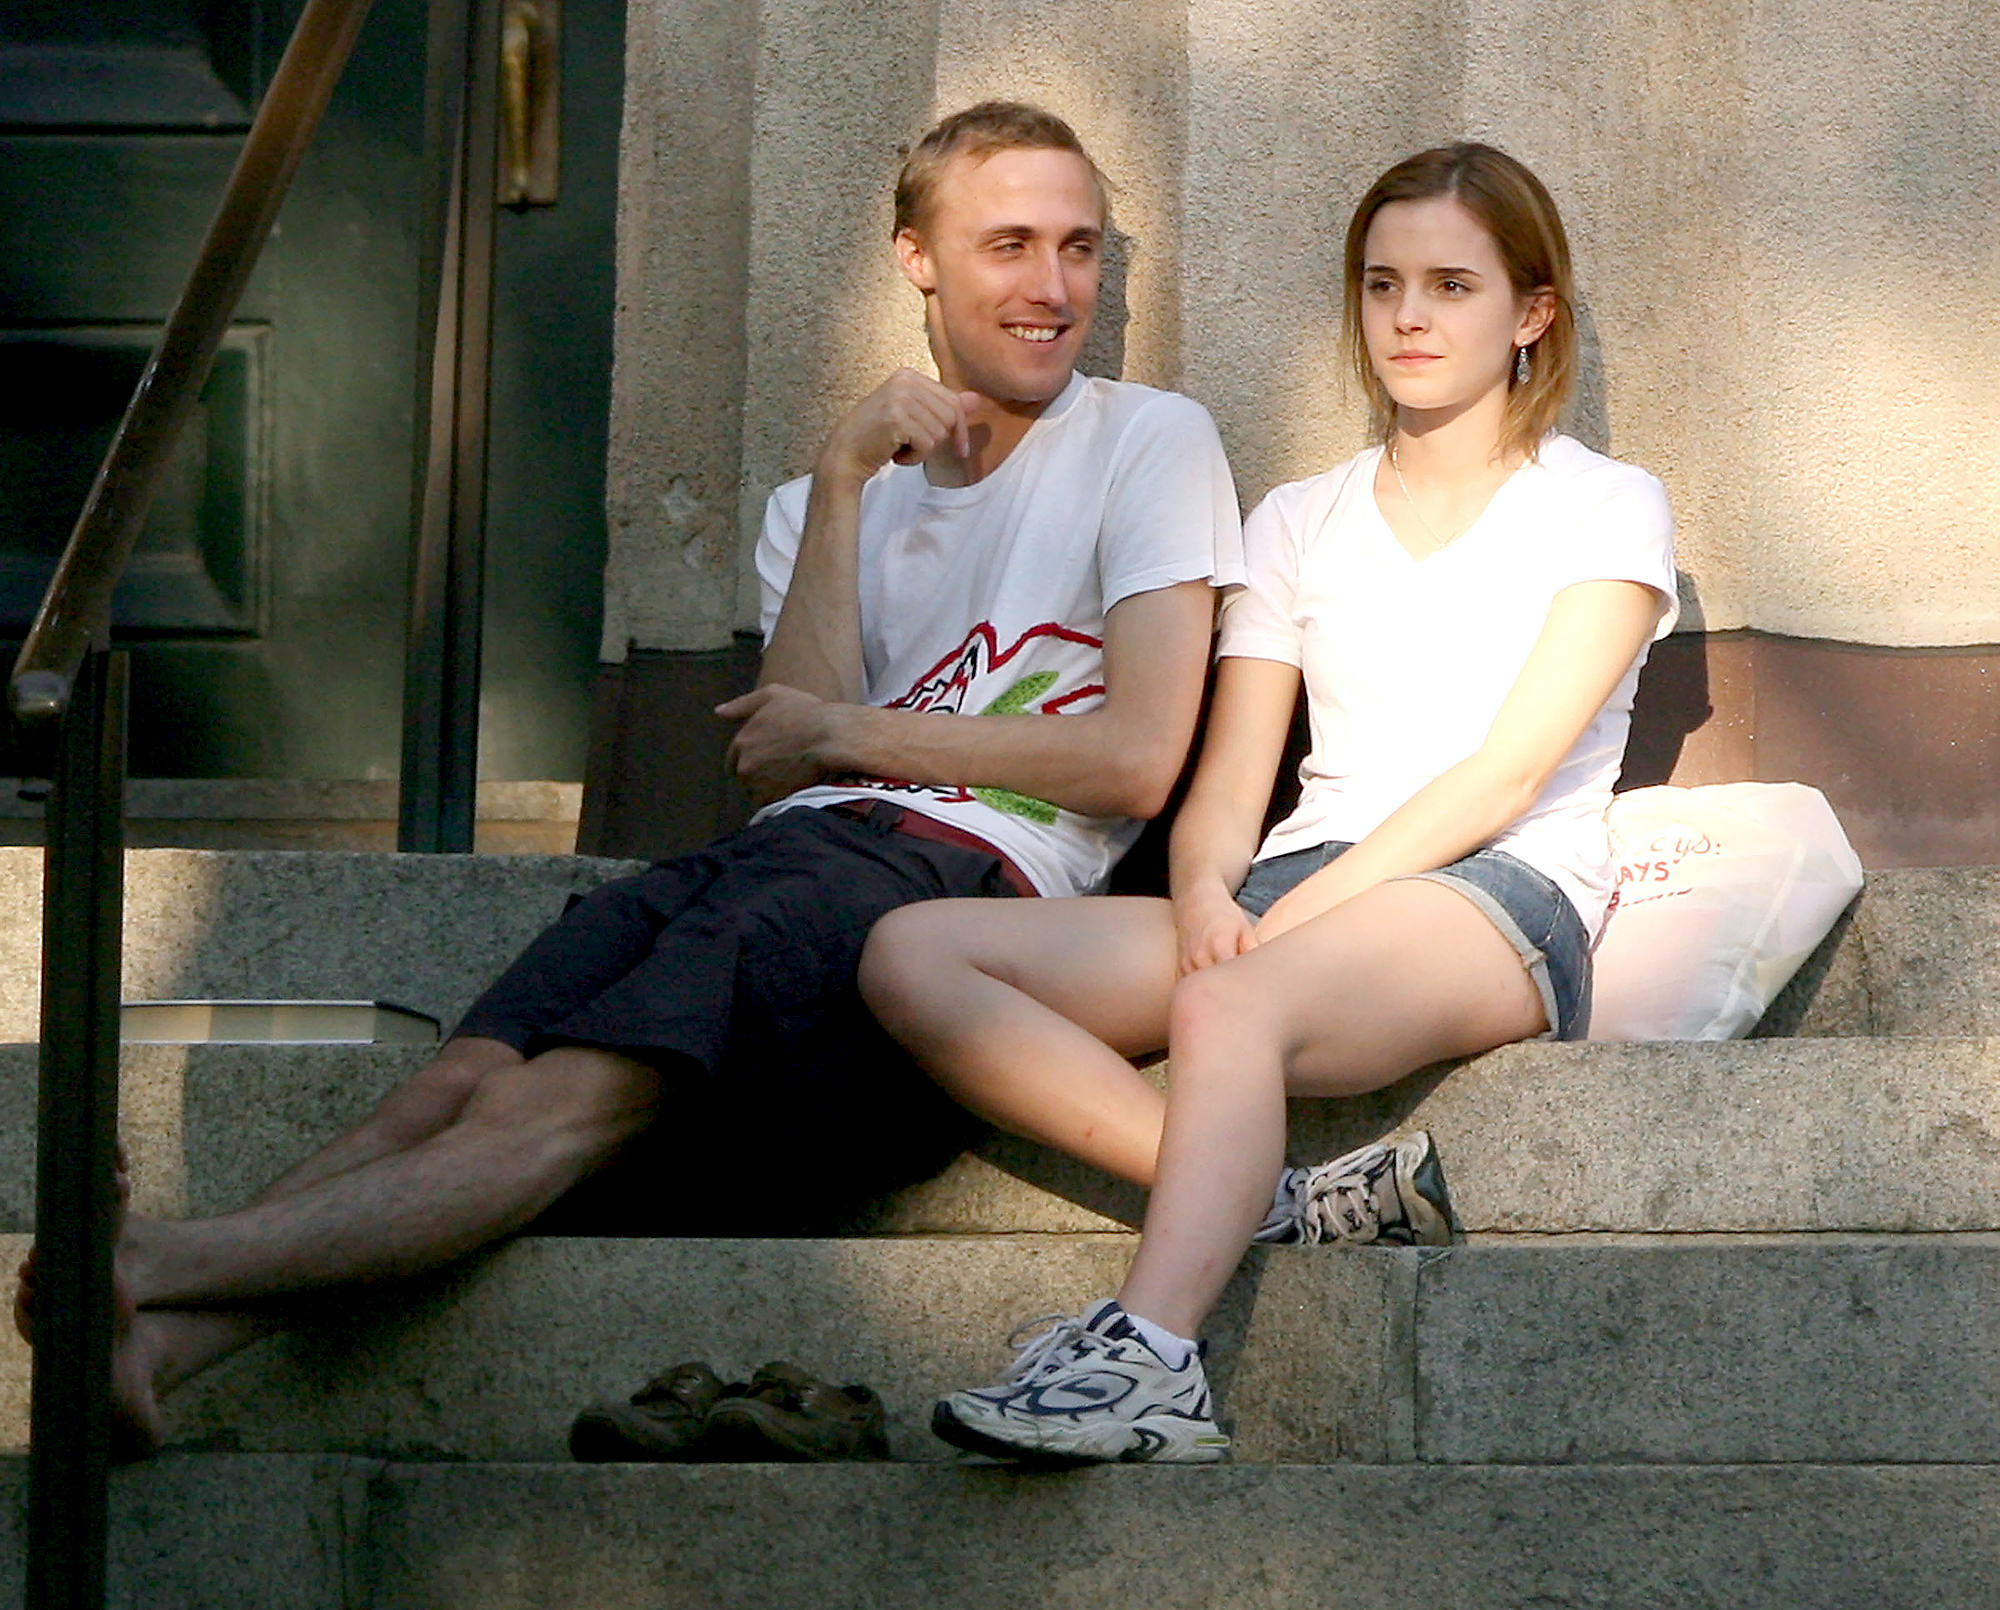 Emma-Watson-Jay-Barrymore - The Harry Potter alum started dating the British financier, who is seven years her senior, in August 2008, but split seven months later. Distance is reported to be the reason for their breakup, as Watson was attending Brown University in Rhode Island while Barrymore remained in England.